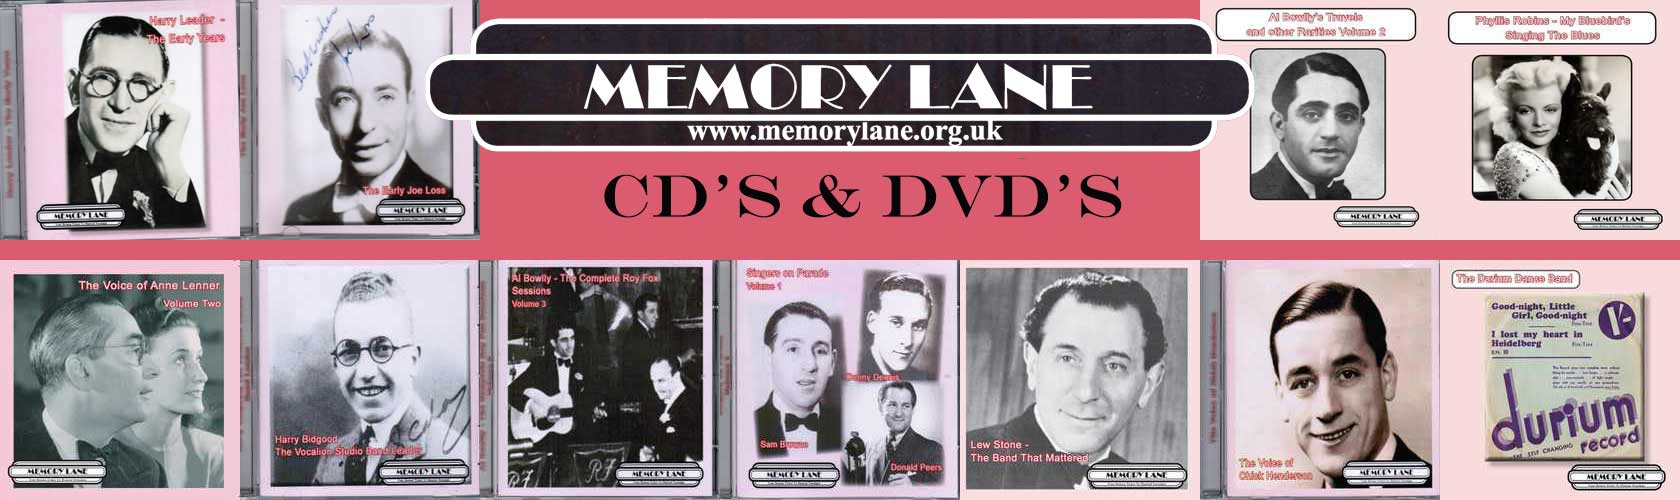 Memory Lane CD's and DVD's